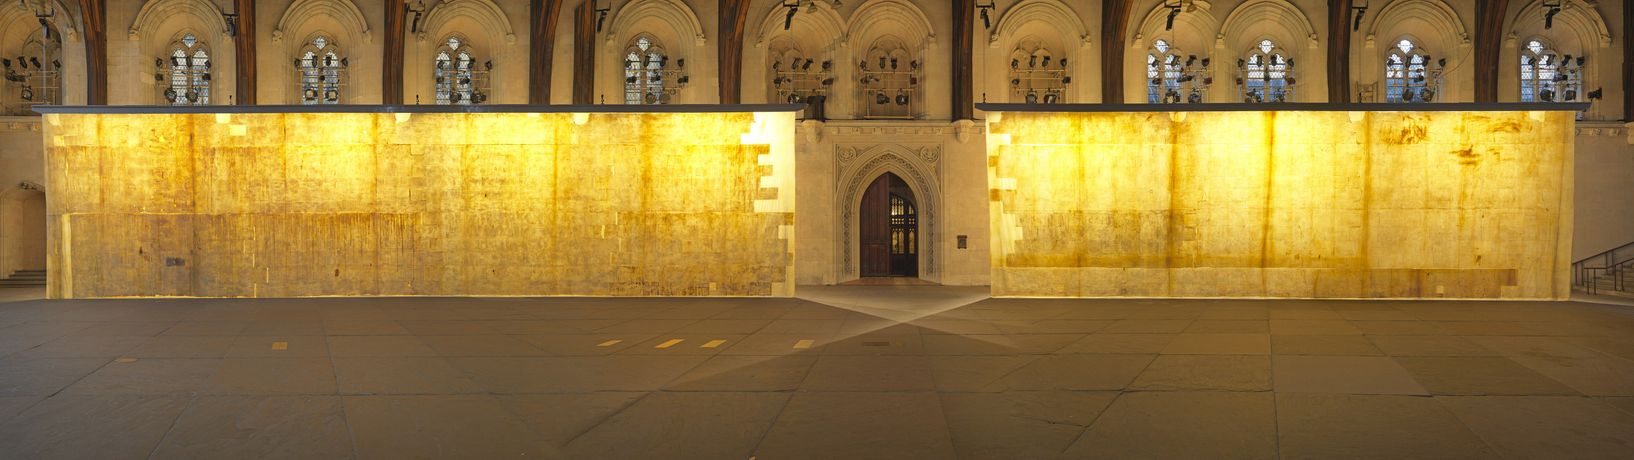 The Ethics of Dust at Westminster Hall, by Jorge Otero-Pailos, 2016. An Artangel commission. Photo by Marcus J Leith.